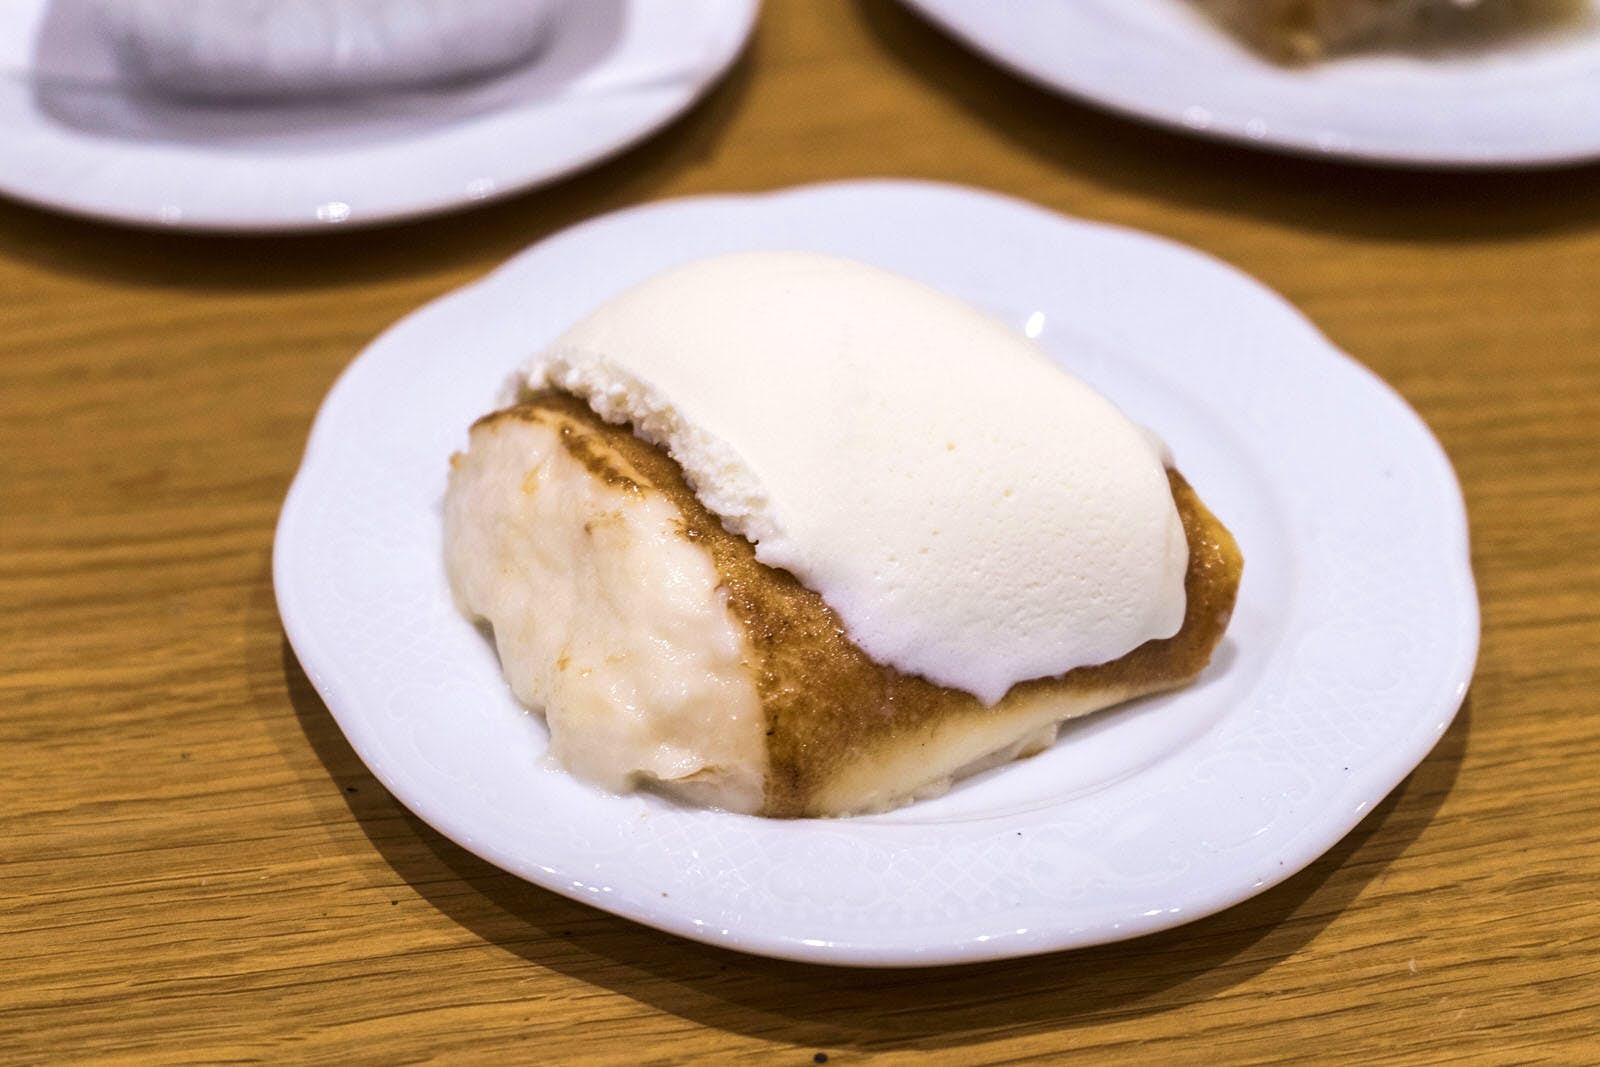 Tavuk göğsü in Turkey, a rice pudding-like dessert made from chicken. The dish is served on a white plate on a wooden table. Levin / Lonely Planet